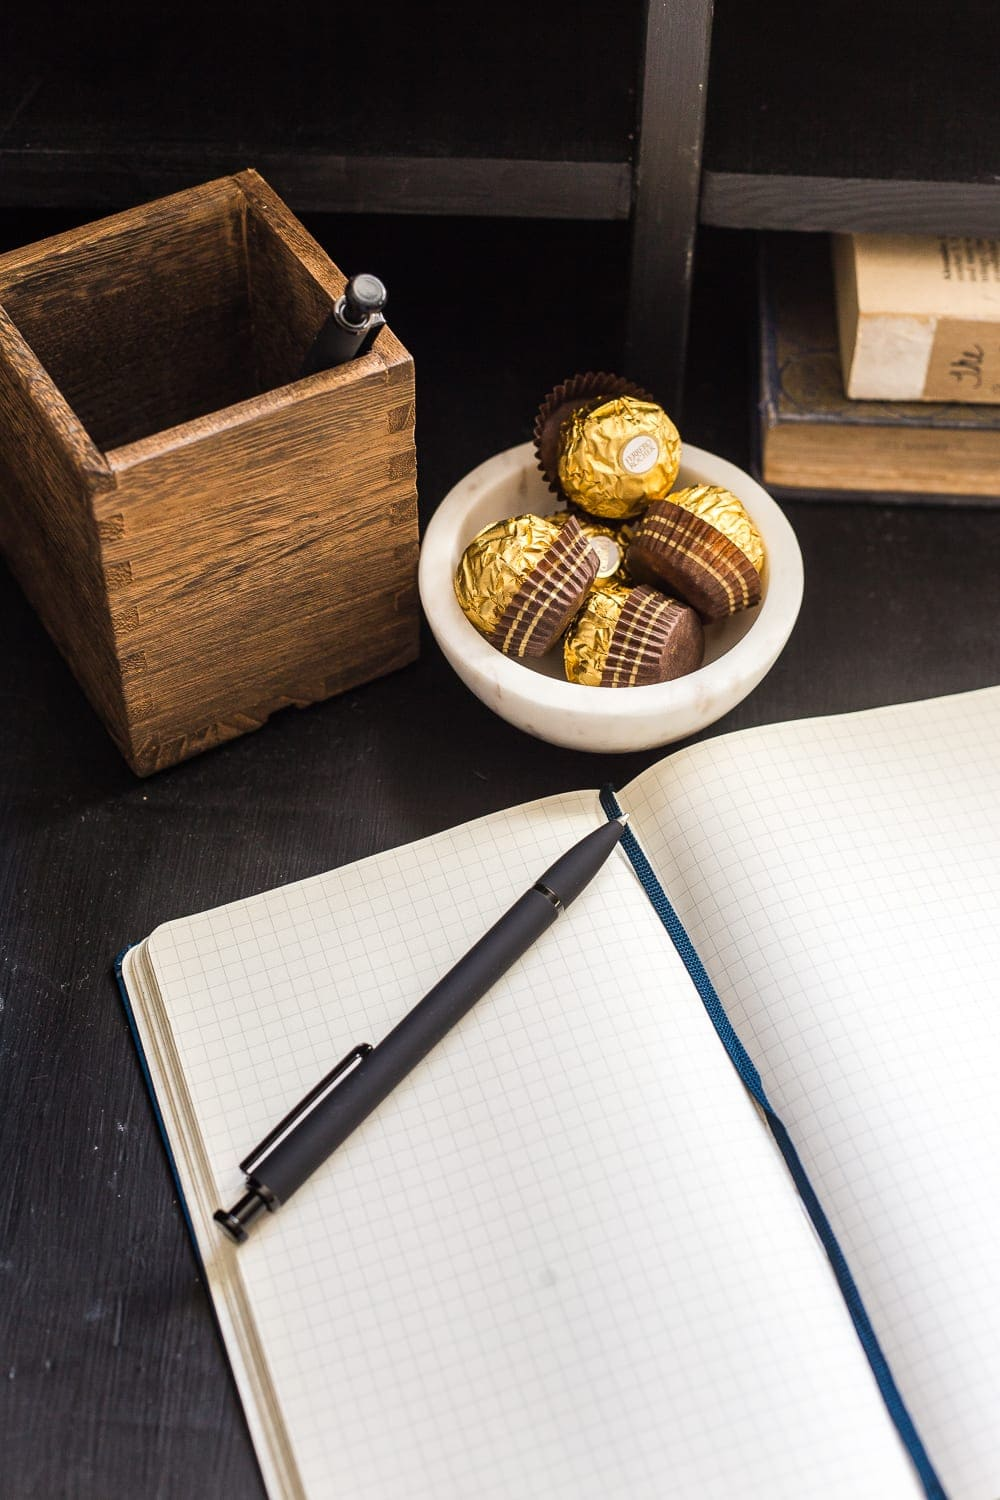 38 Guest Bedroom Essentials | Keep a notepad and pen handy along with a few chocolates to treat your guests.